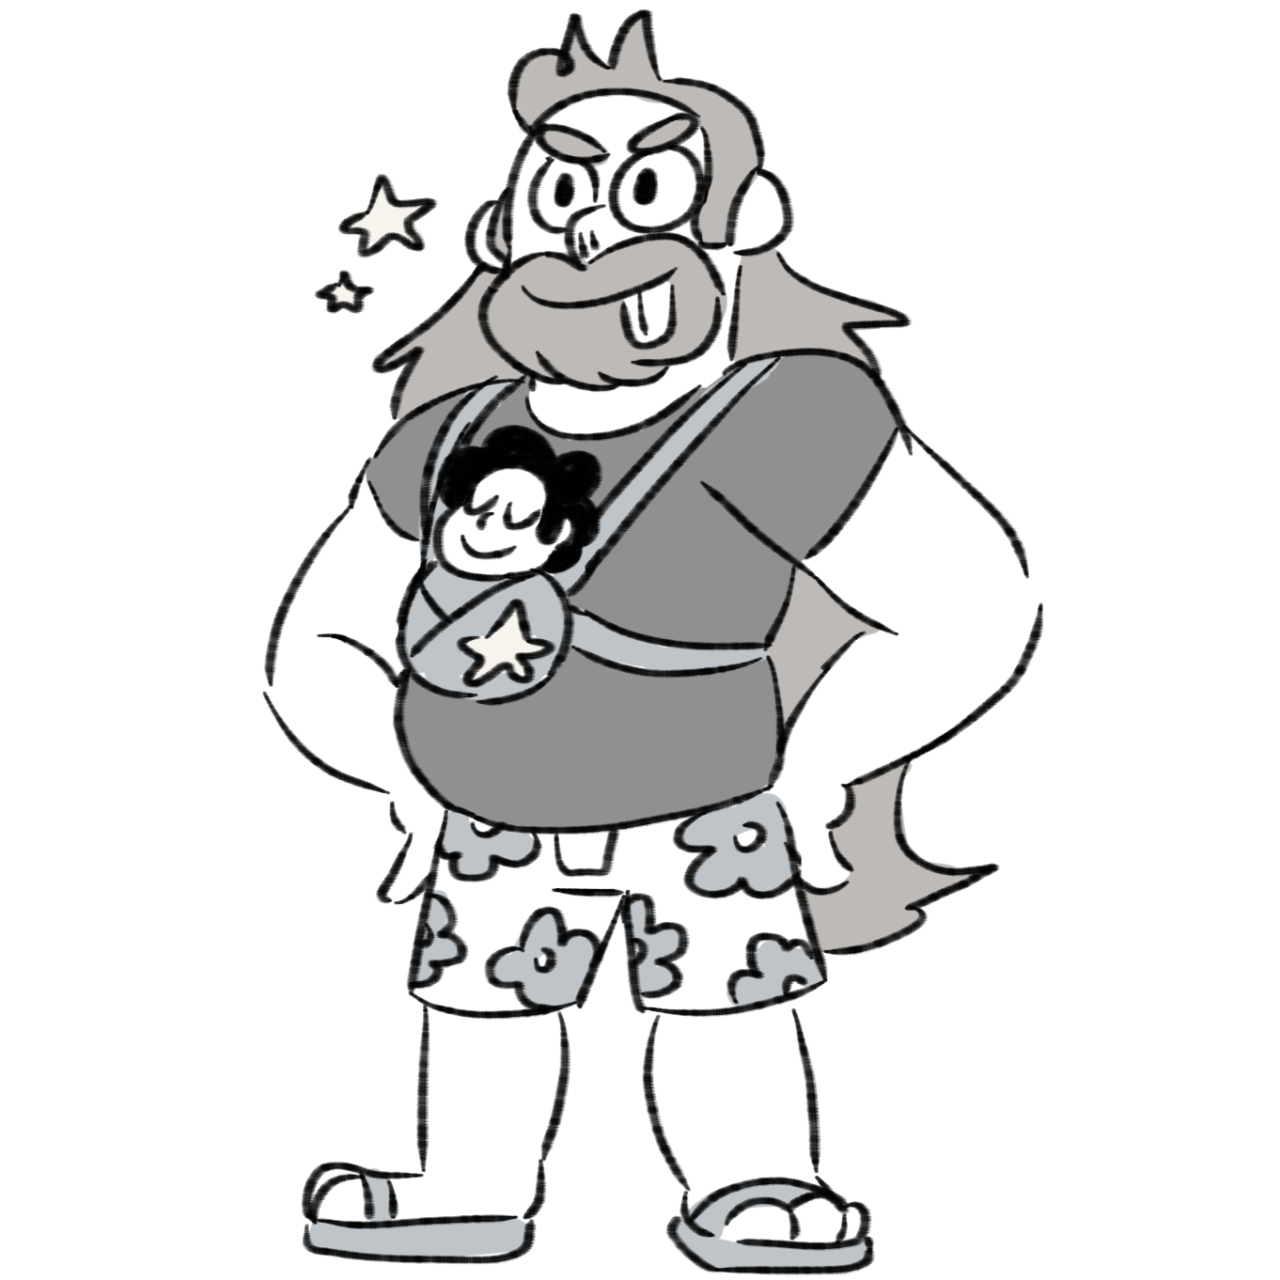 quick doodle of best dad and a tiny steven